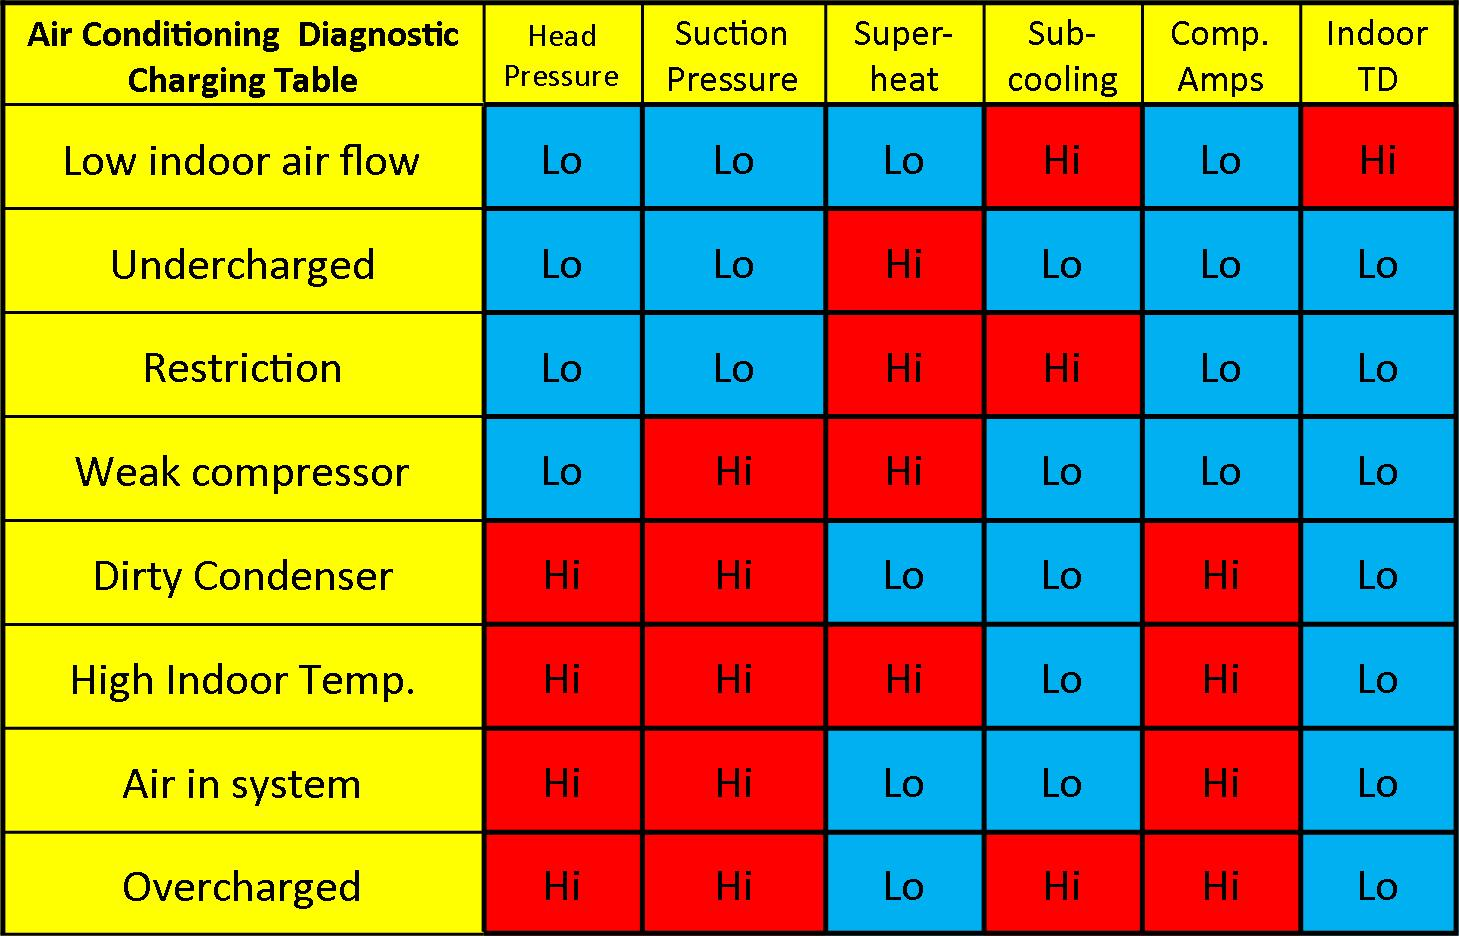 air conditioner troubleshooting chart: Refrigerant problem diagnostic chart total performance